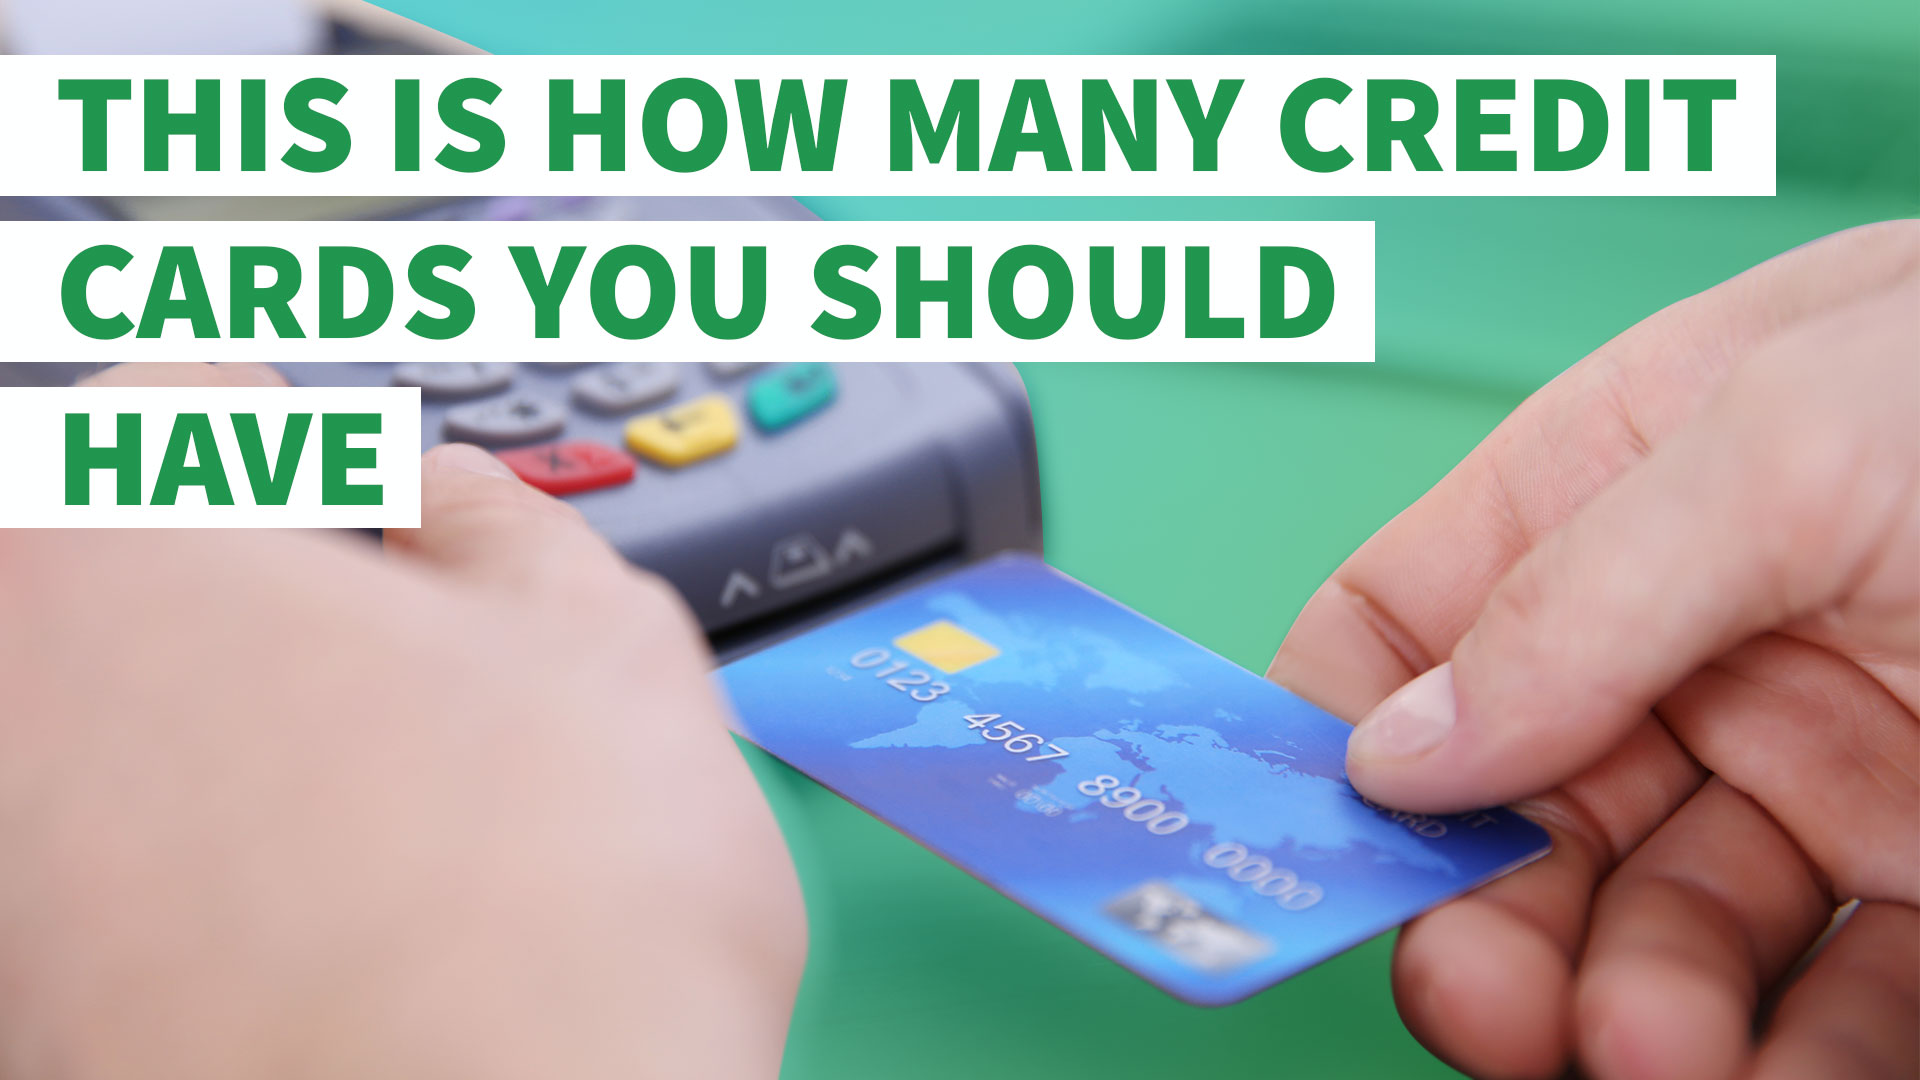 How Many Credit Cards Should I Have? | GOBankingRates